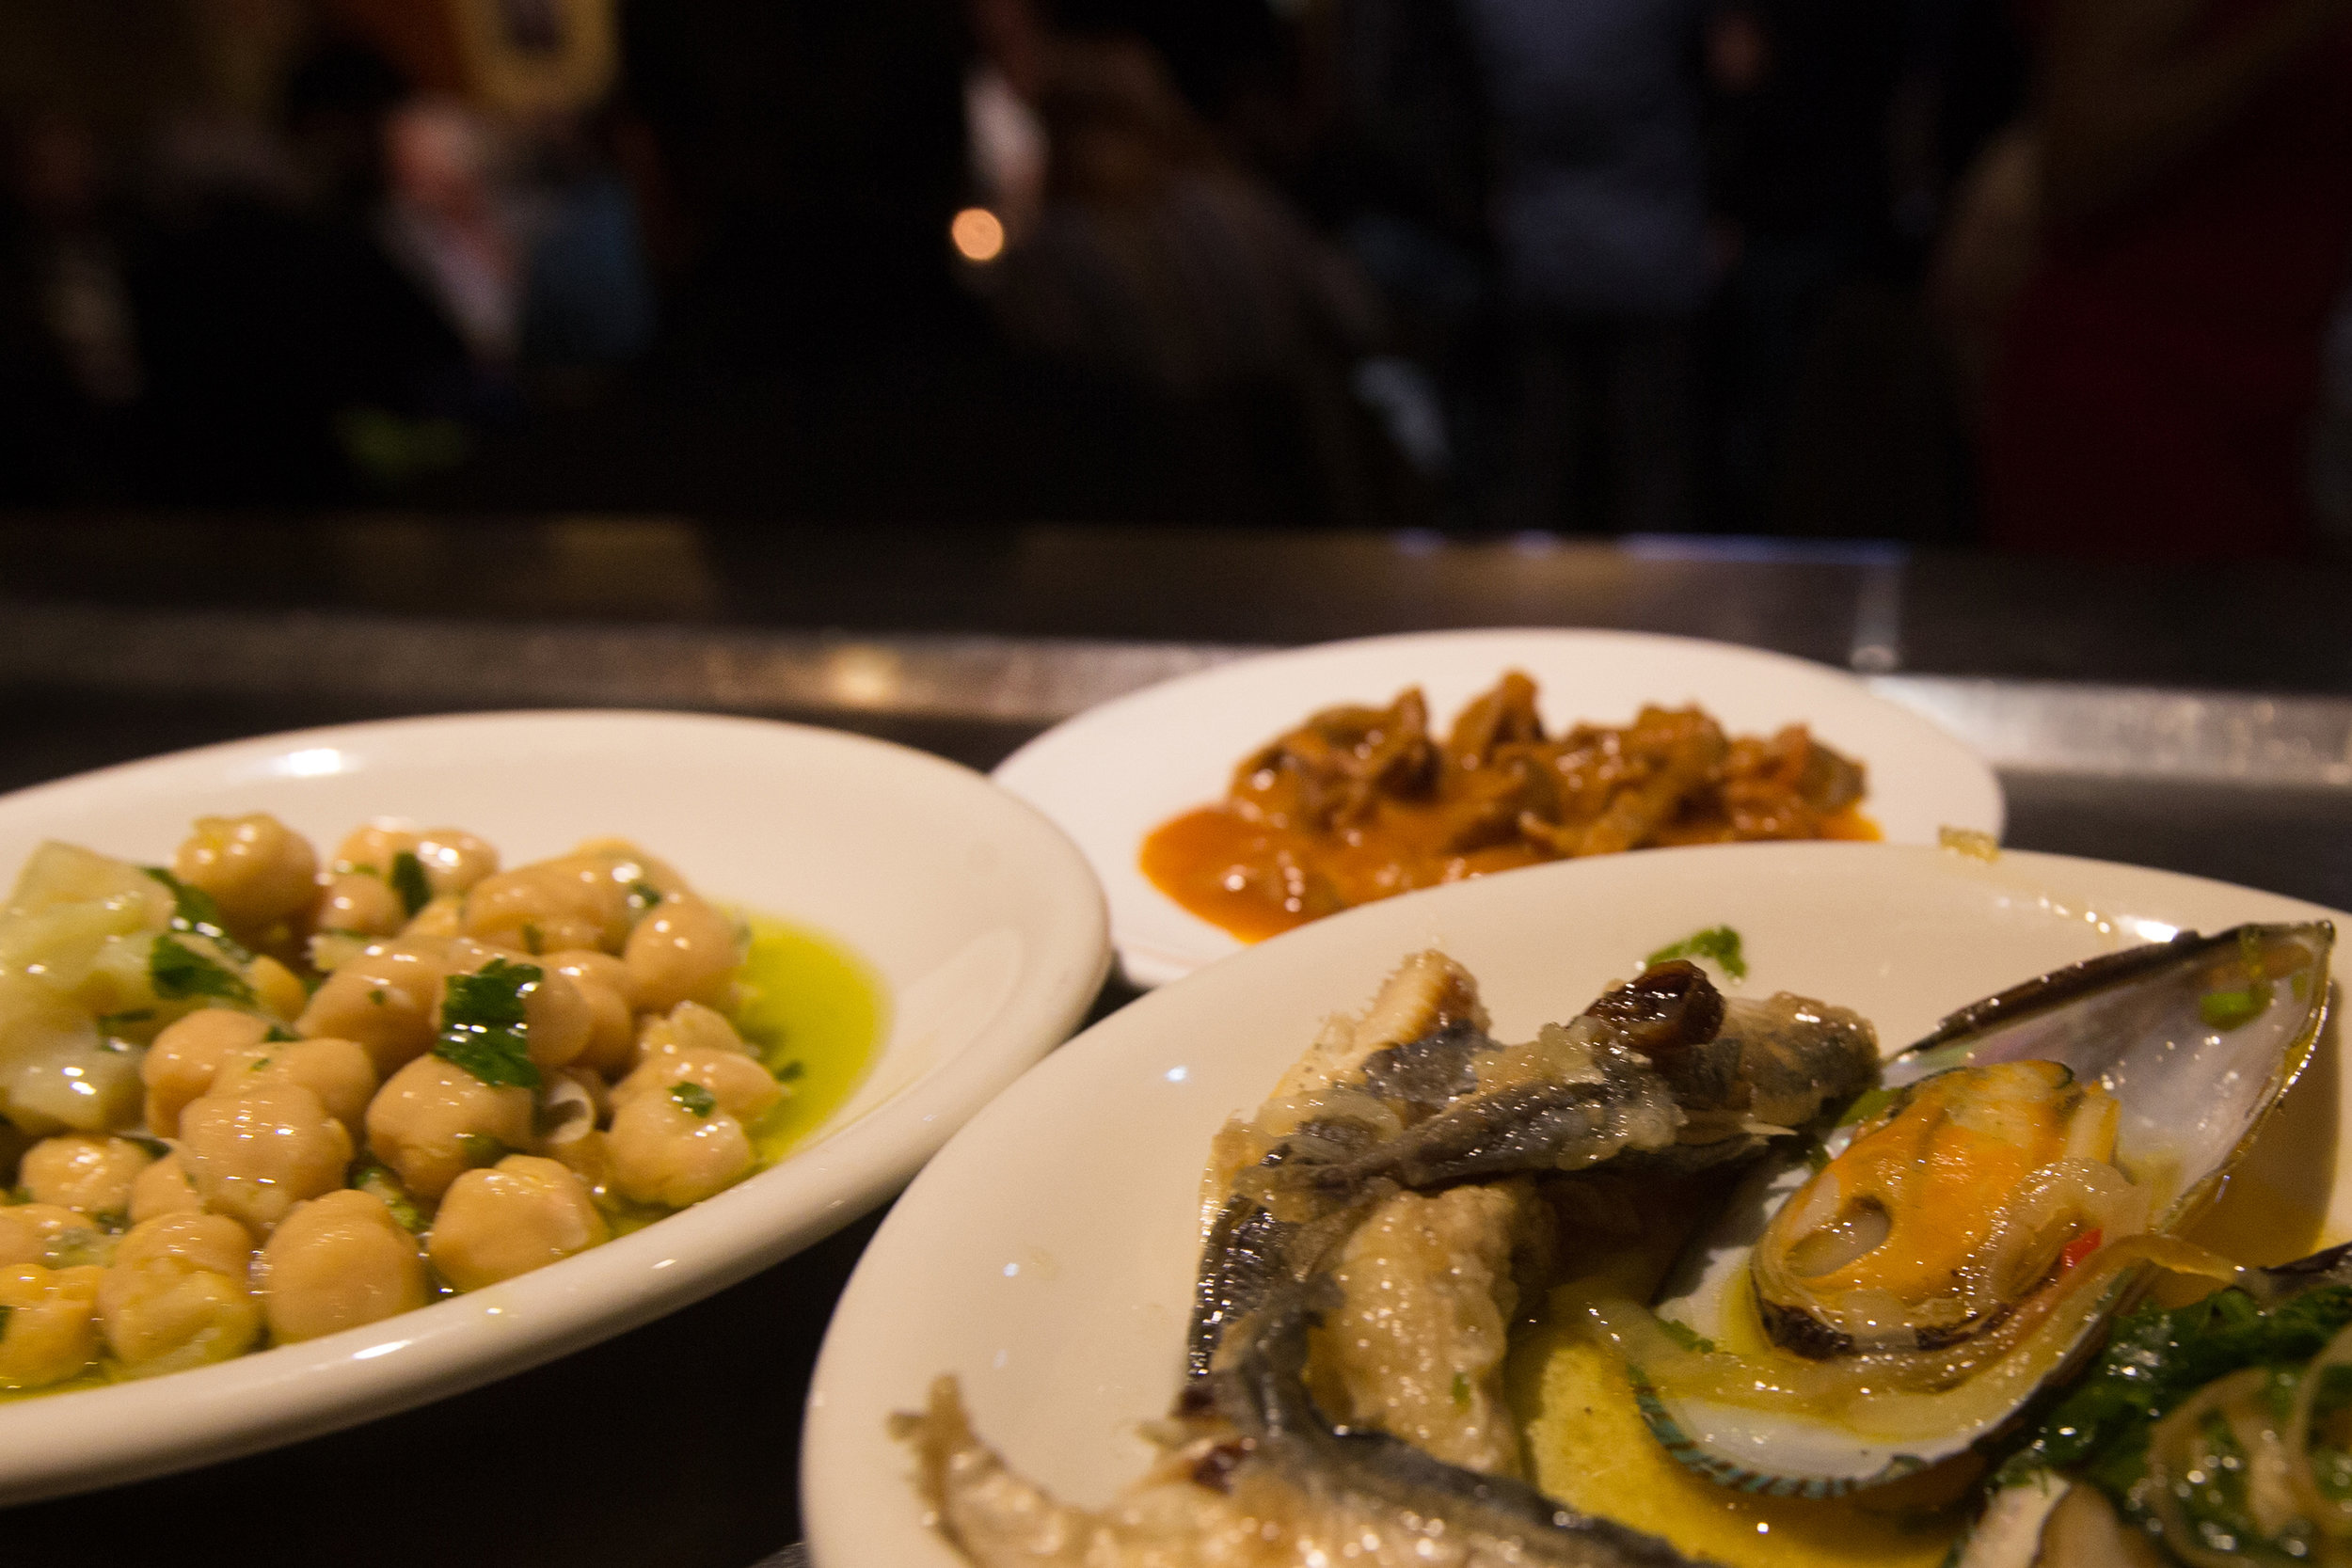 Chick peas with cod chunks, Portuguese olive oil, and herbs; cicken gizzards in a tomato sauce; Mussels with baby mackeral onoins garlic coriander, cilantro and Portuguese olive oil.